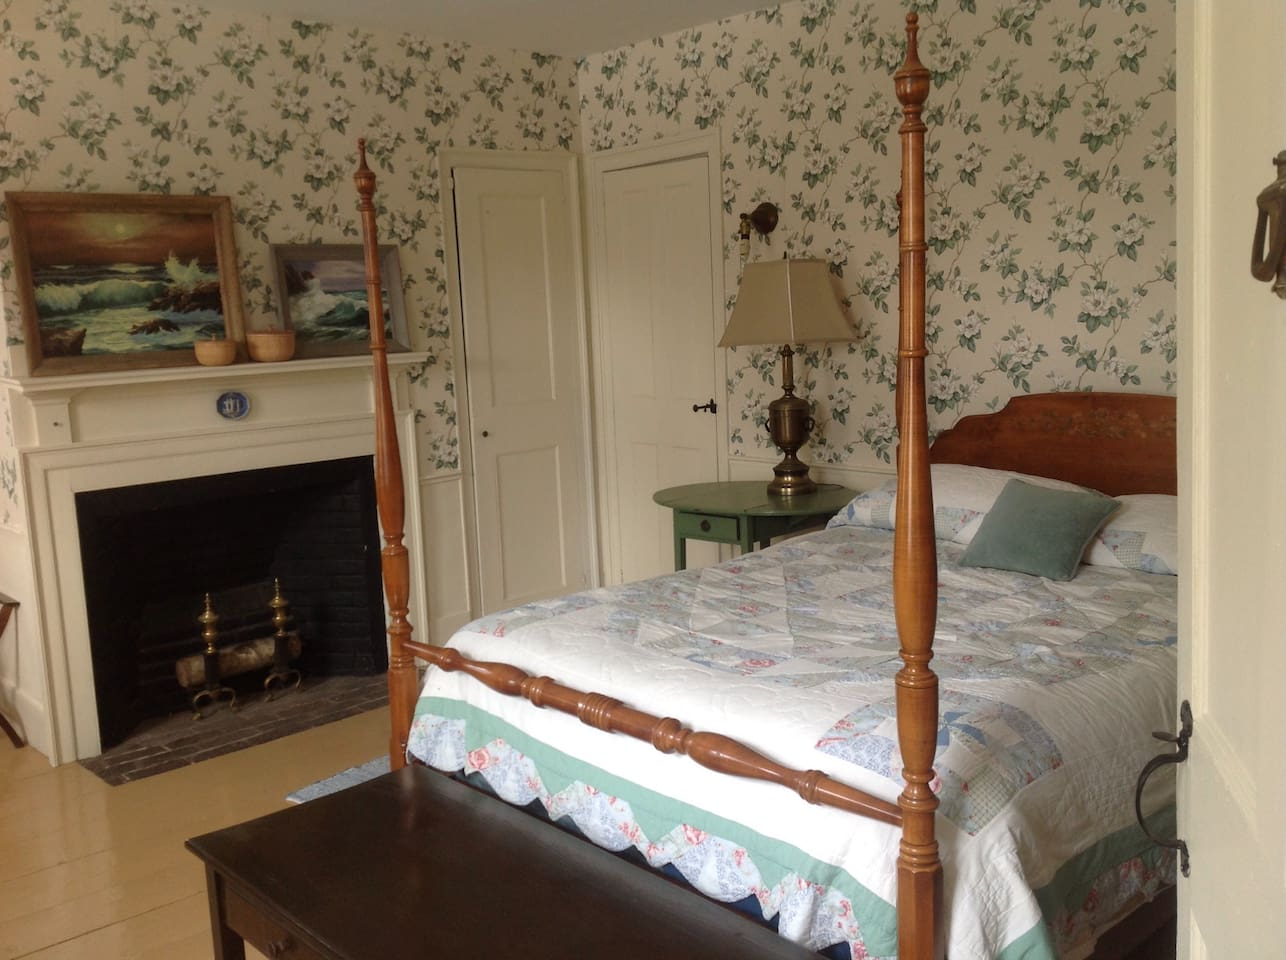 Double bed with colonial decor.